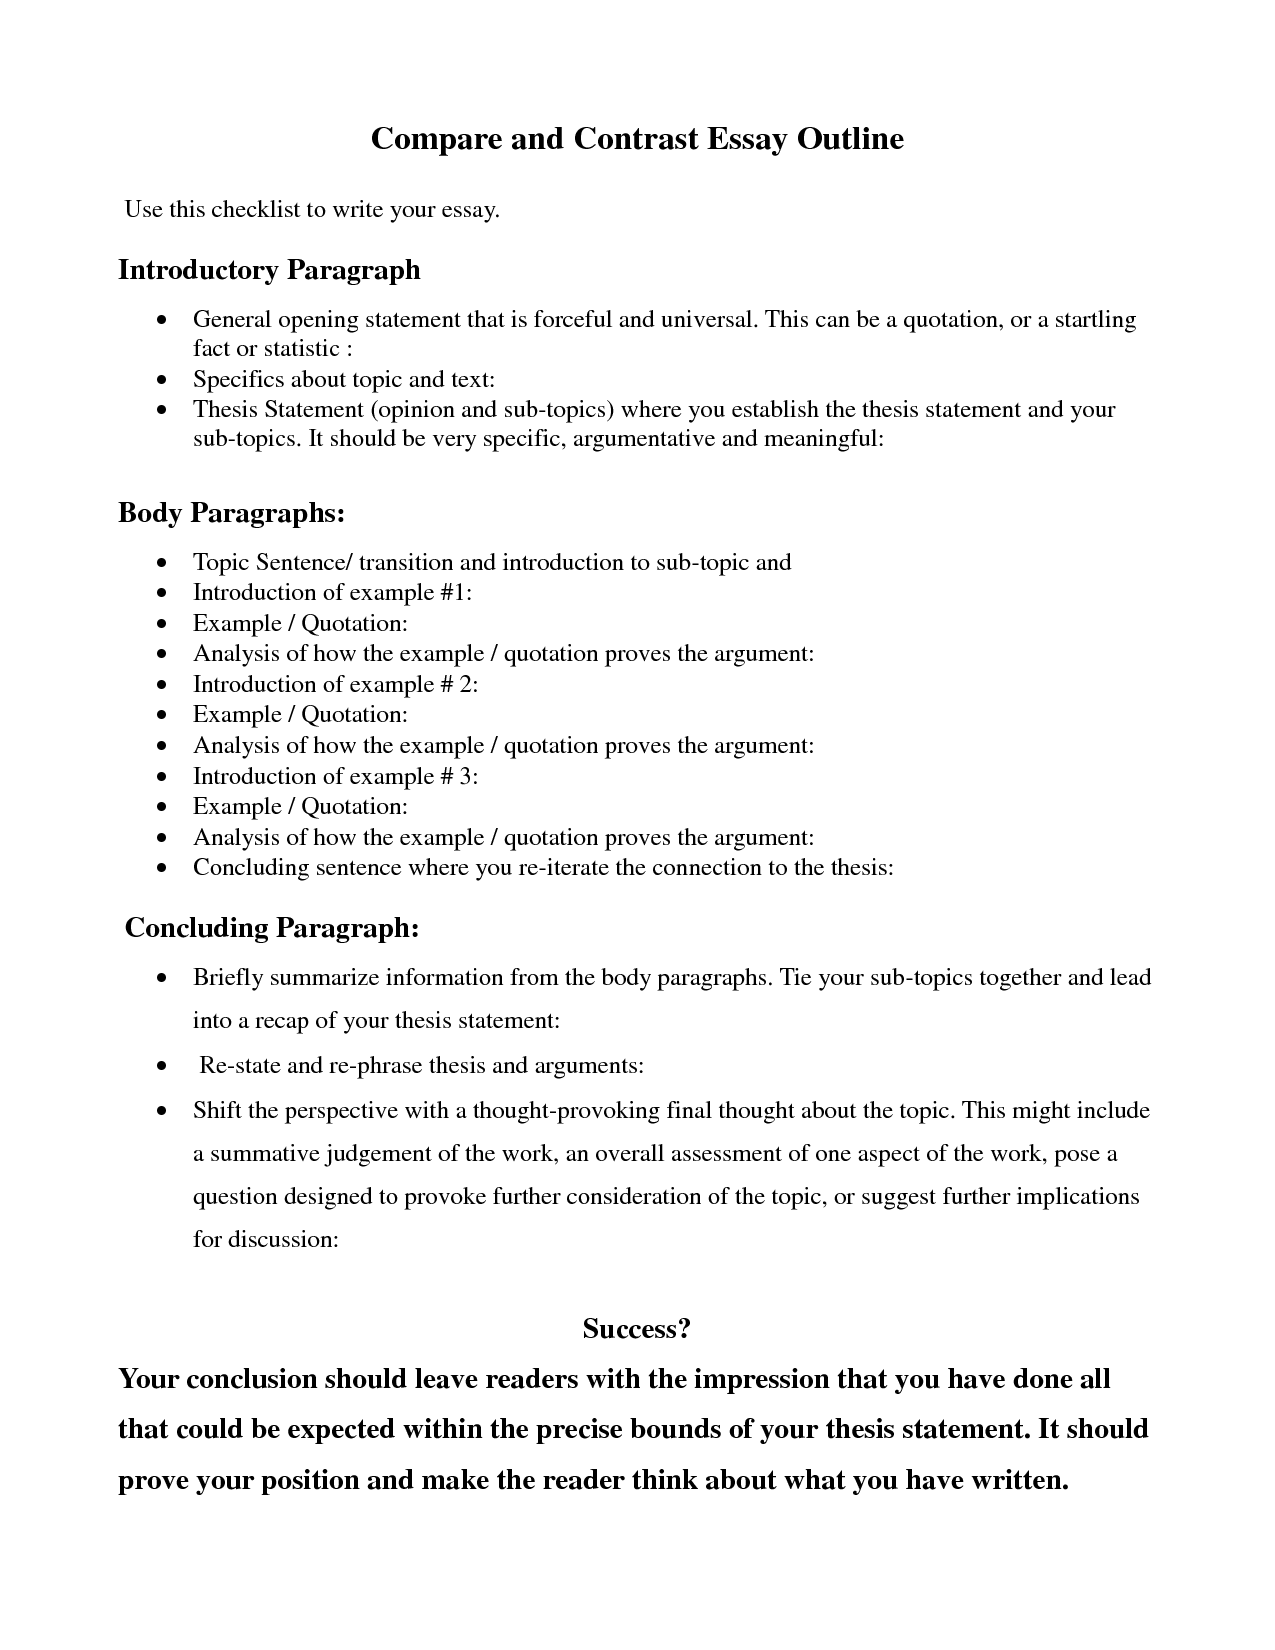 Comparecontrast Essay Outline  Google Search  Education  Thesis  Comparecontrast Essay Outline  Google Search High School Essay Example also Apa Essay Papers  Custom Term Papers And Essays